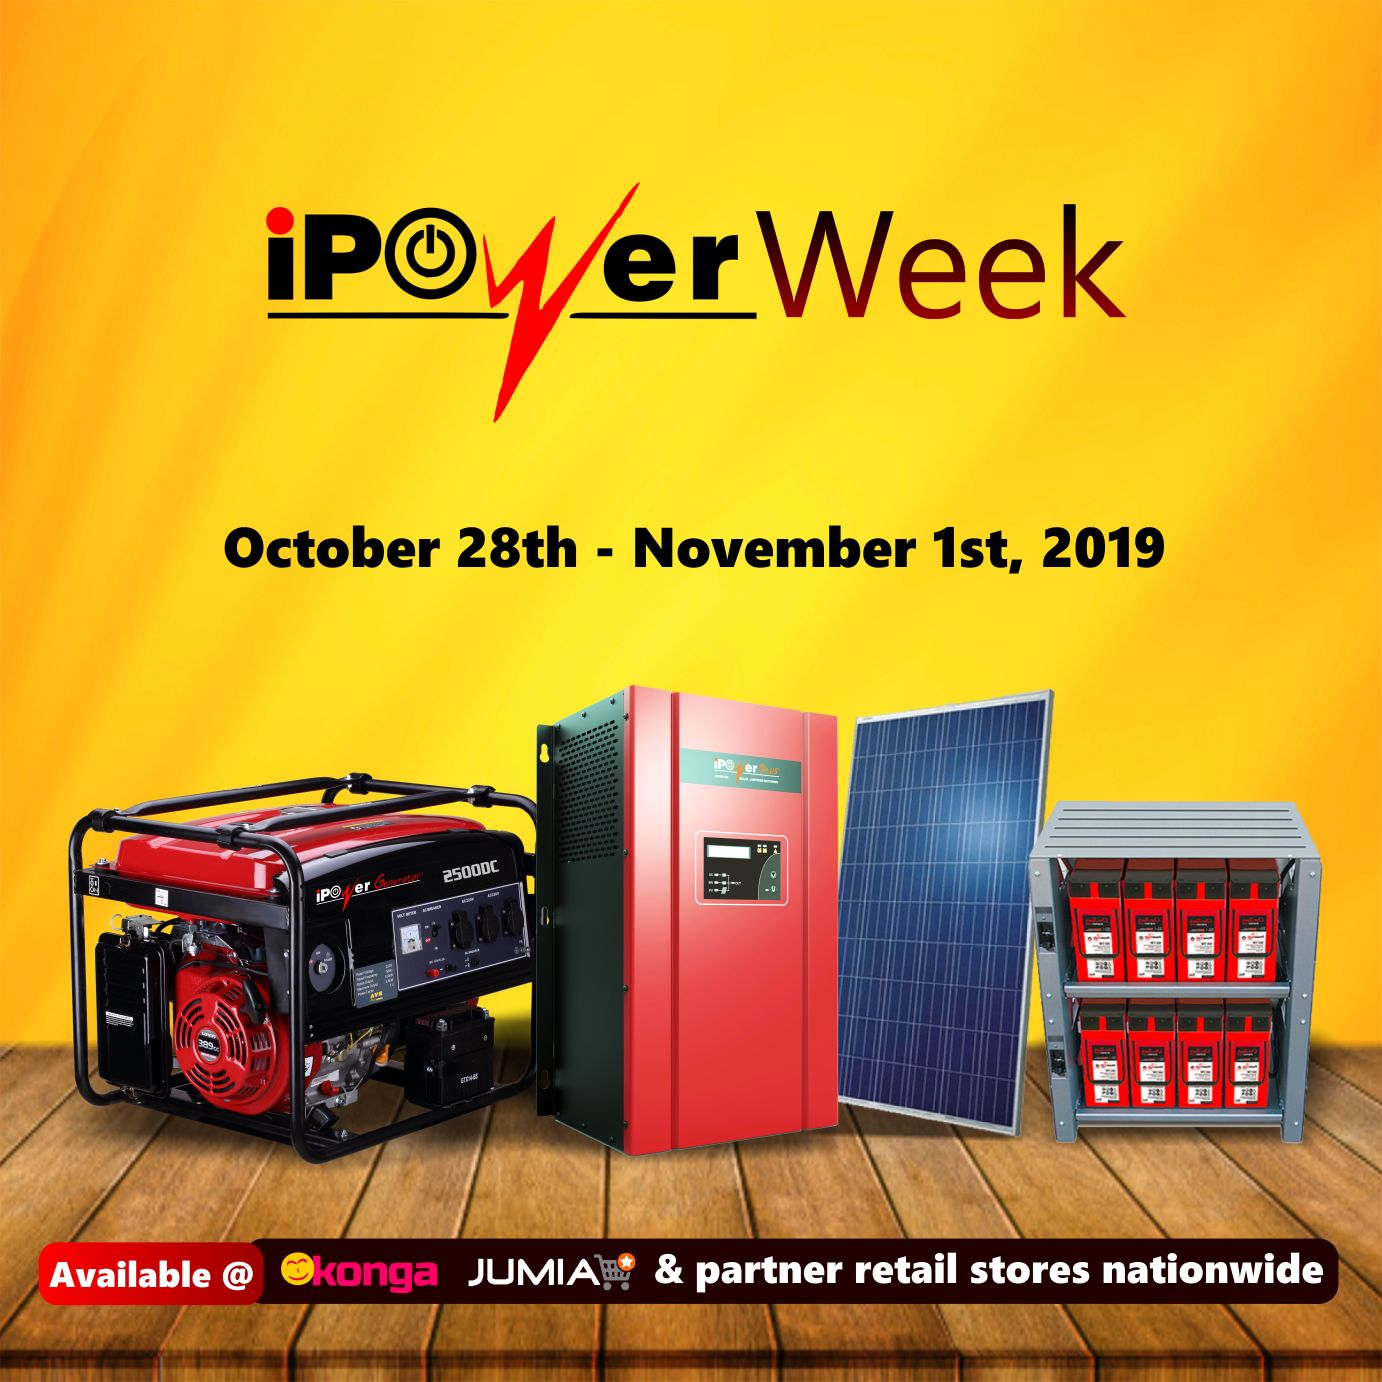 Anticipation rises for iPOWER Week